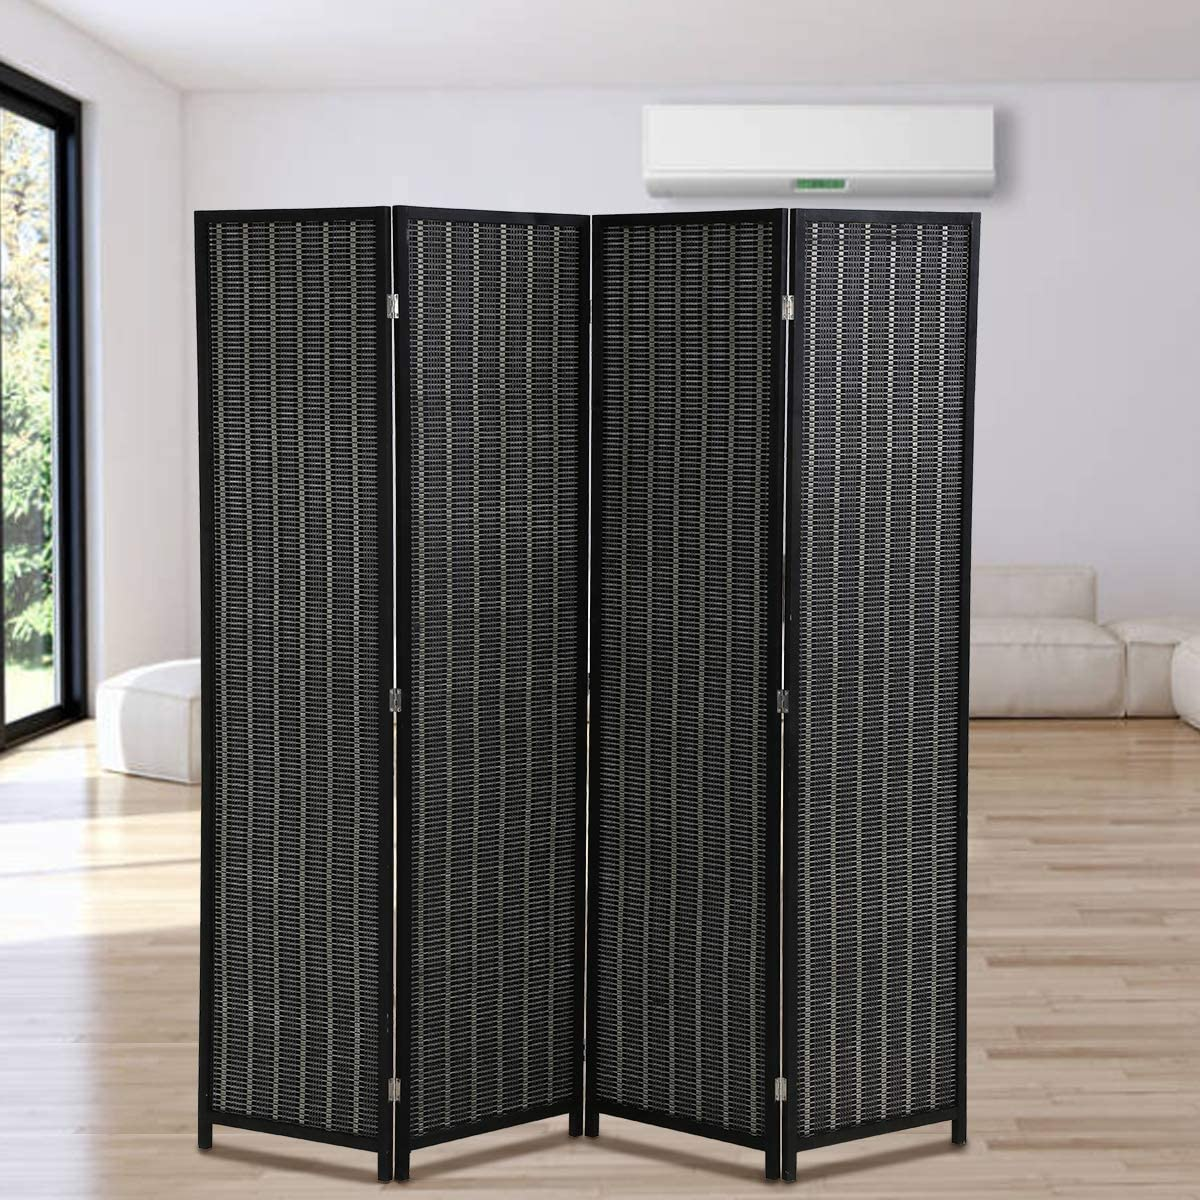 Room Divider Privacy Screen Partition 72 期間限定 Inches Tal お得 Panel 4